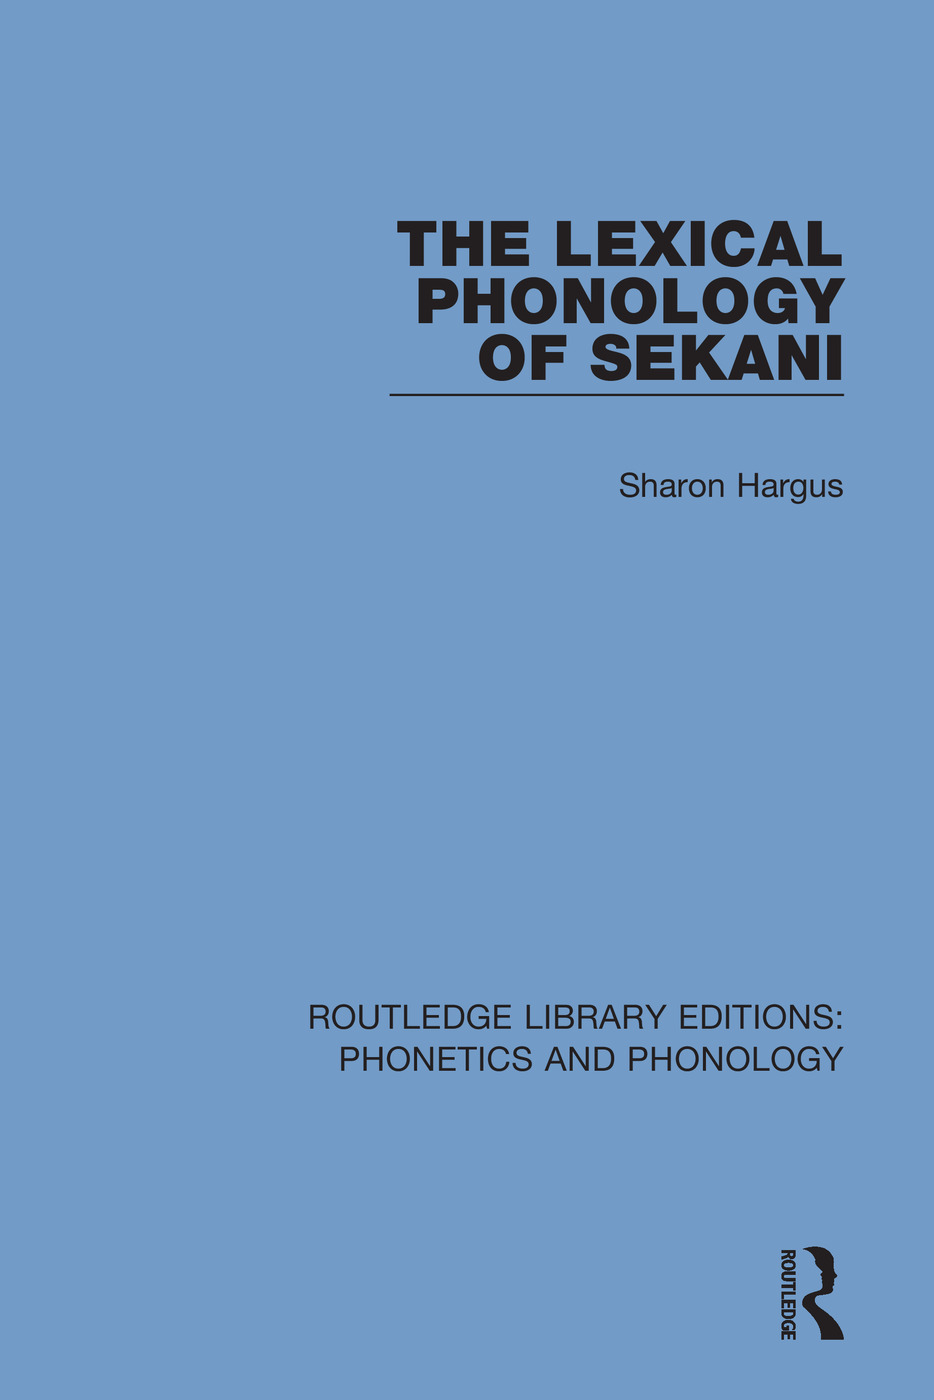 The Lexical Phonology of Sekani